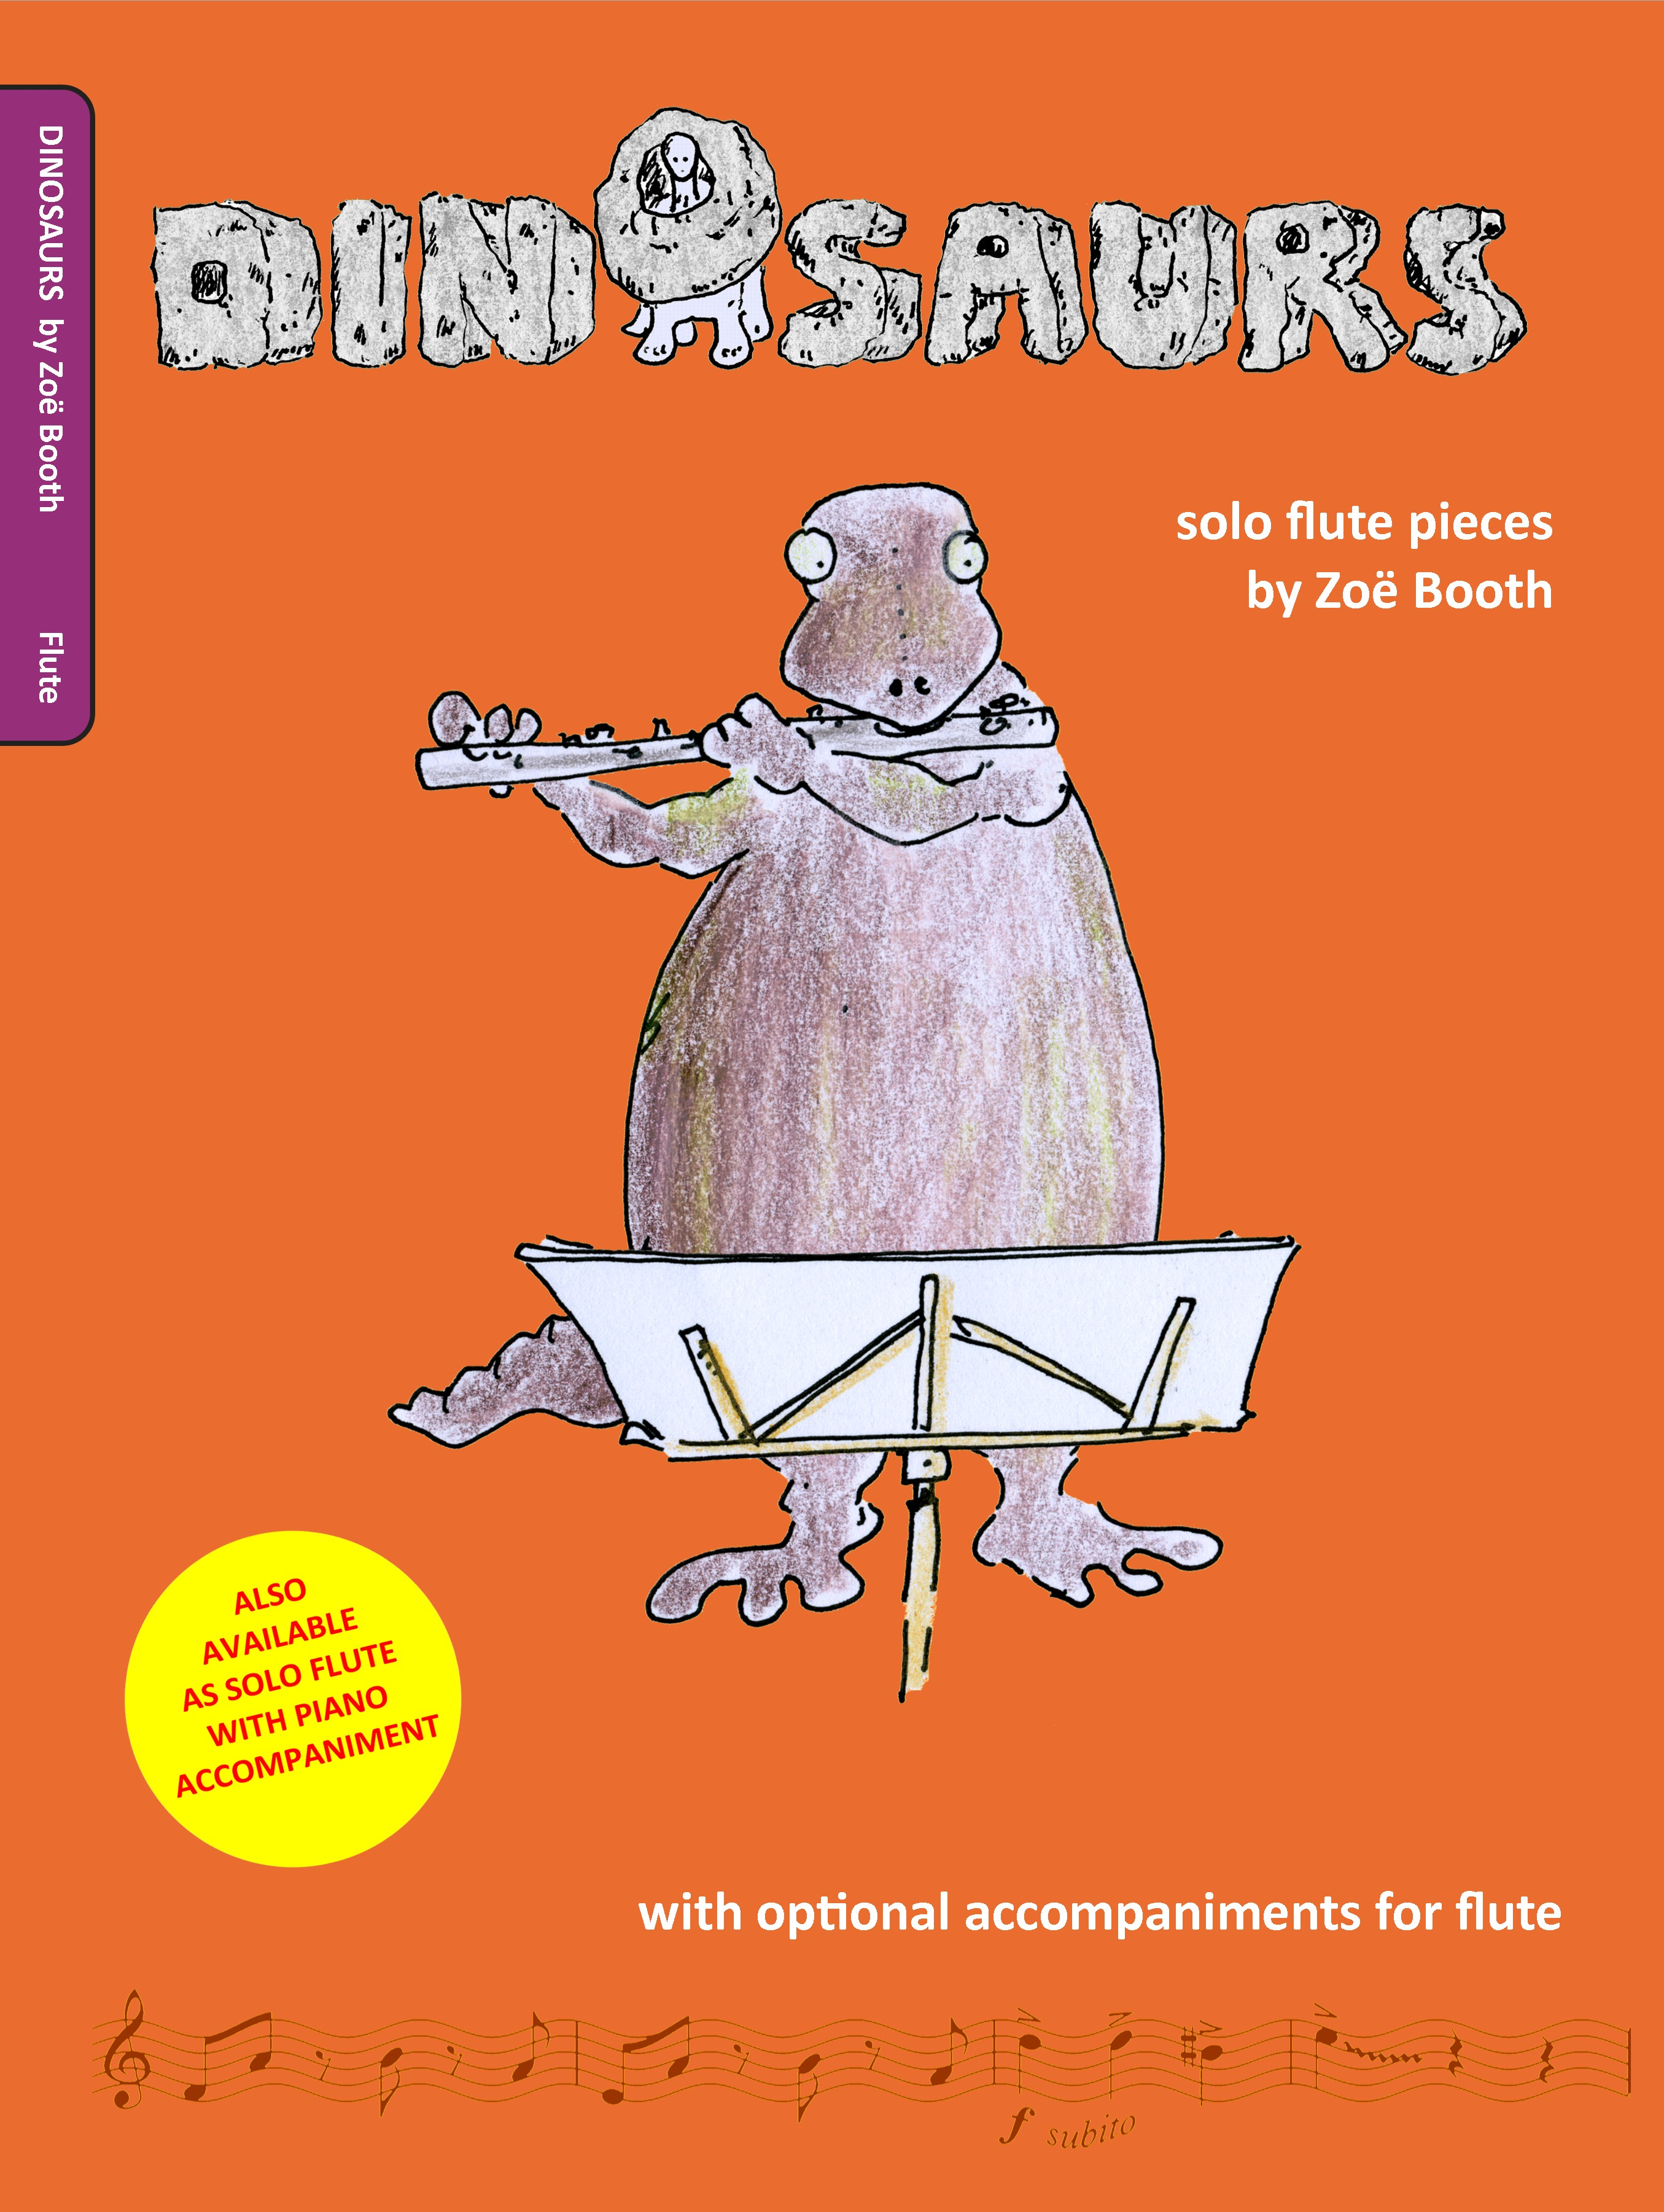 Dinosaurs for flute by Zoë Booth with optional flute accompaniment